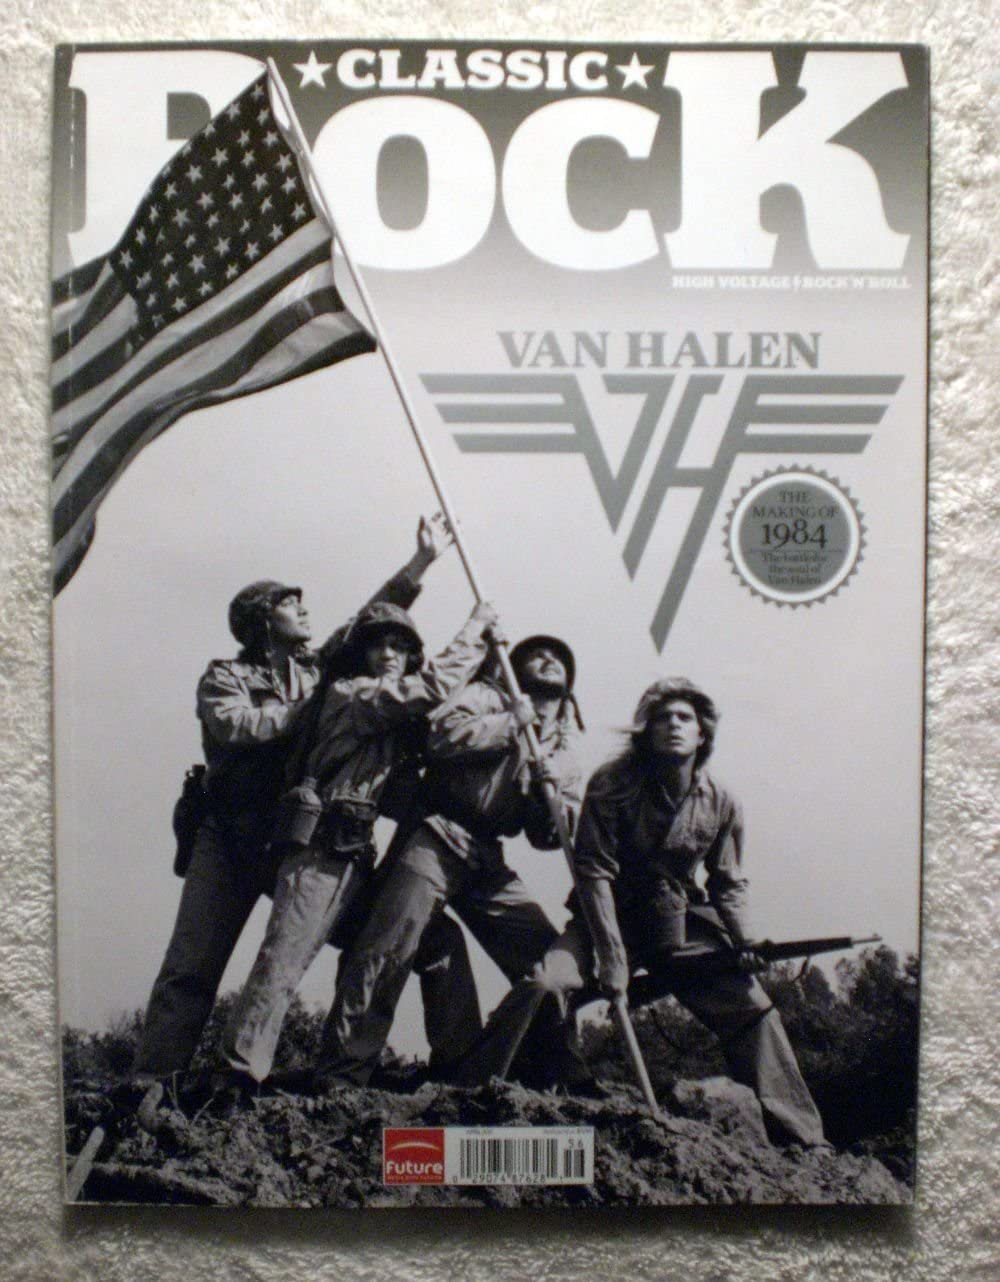 David Lee Roth Eddie Van Halen Alex Van Halen Michael Anthony Van Halen The Making Of 1984 Iwo Jima Theme Classic Rock Magazine 156 April 2011 Cr1 At Amazon S Entertainment Collectibles Store